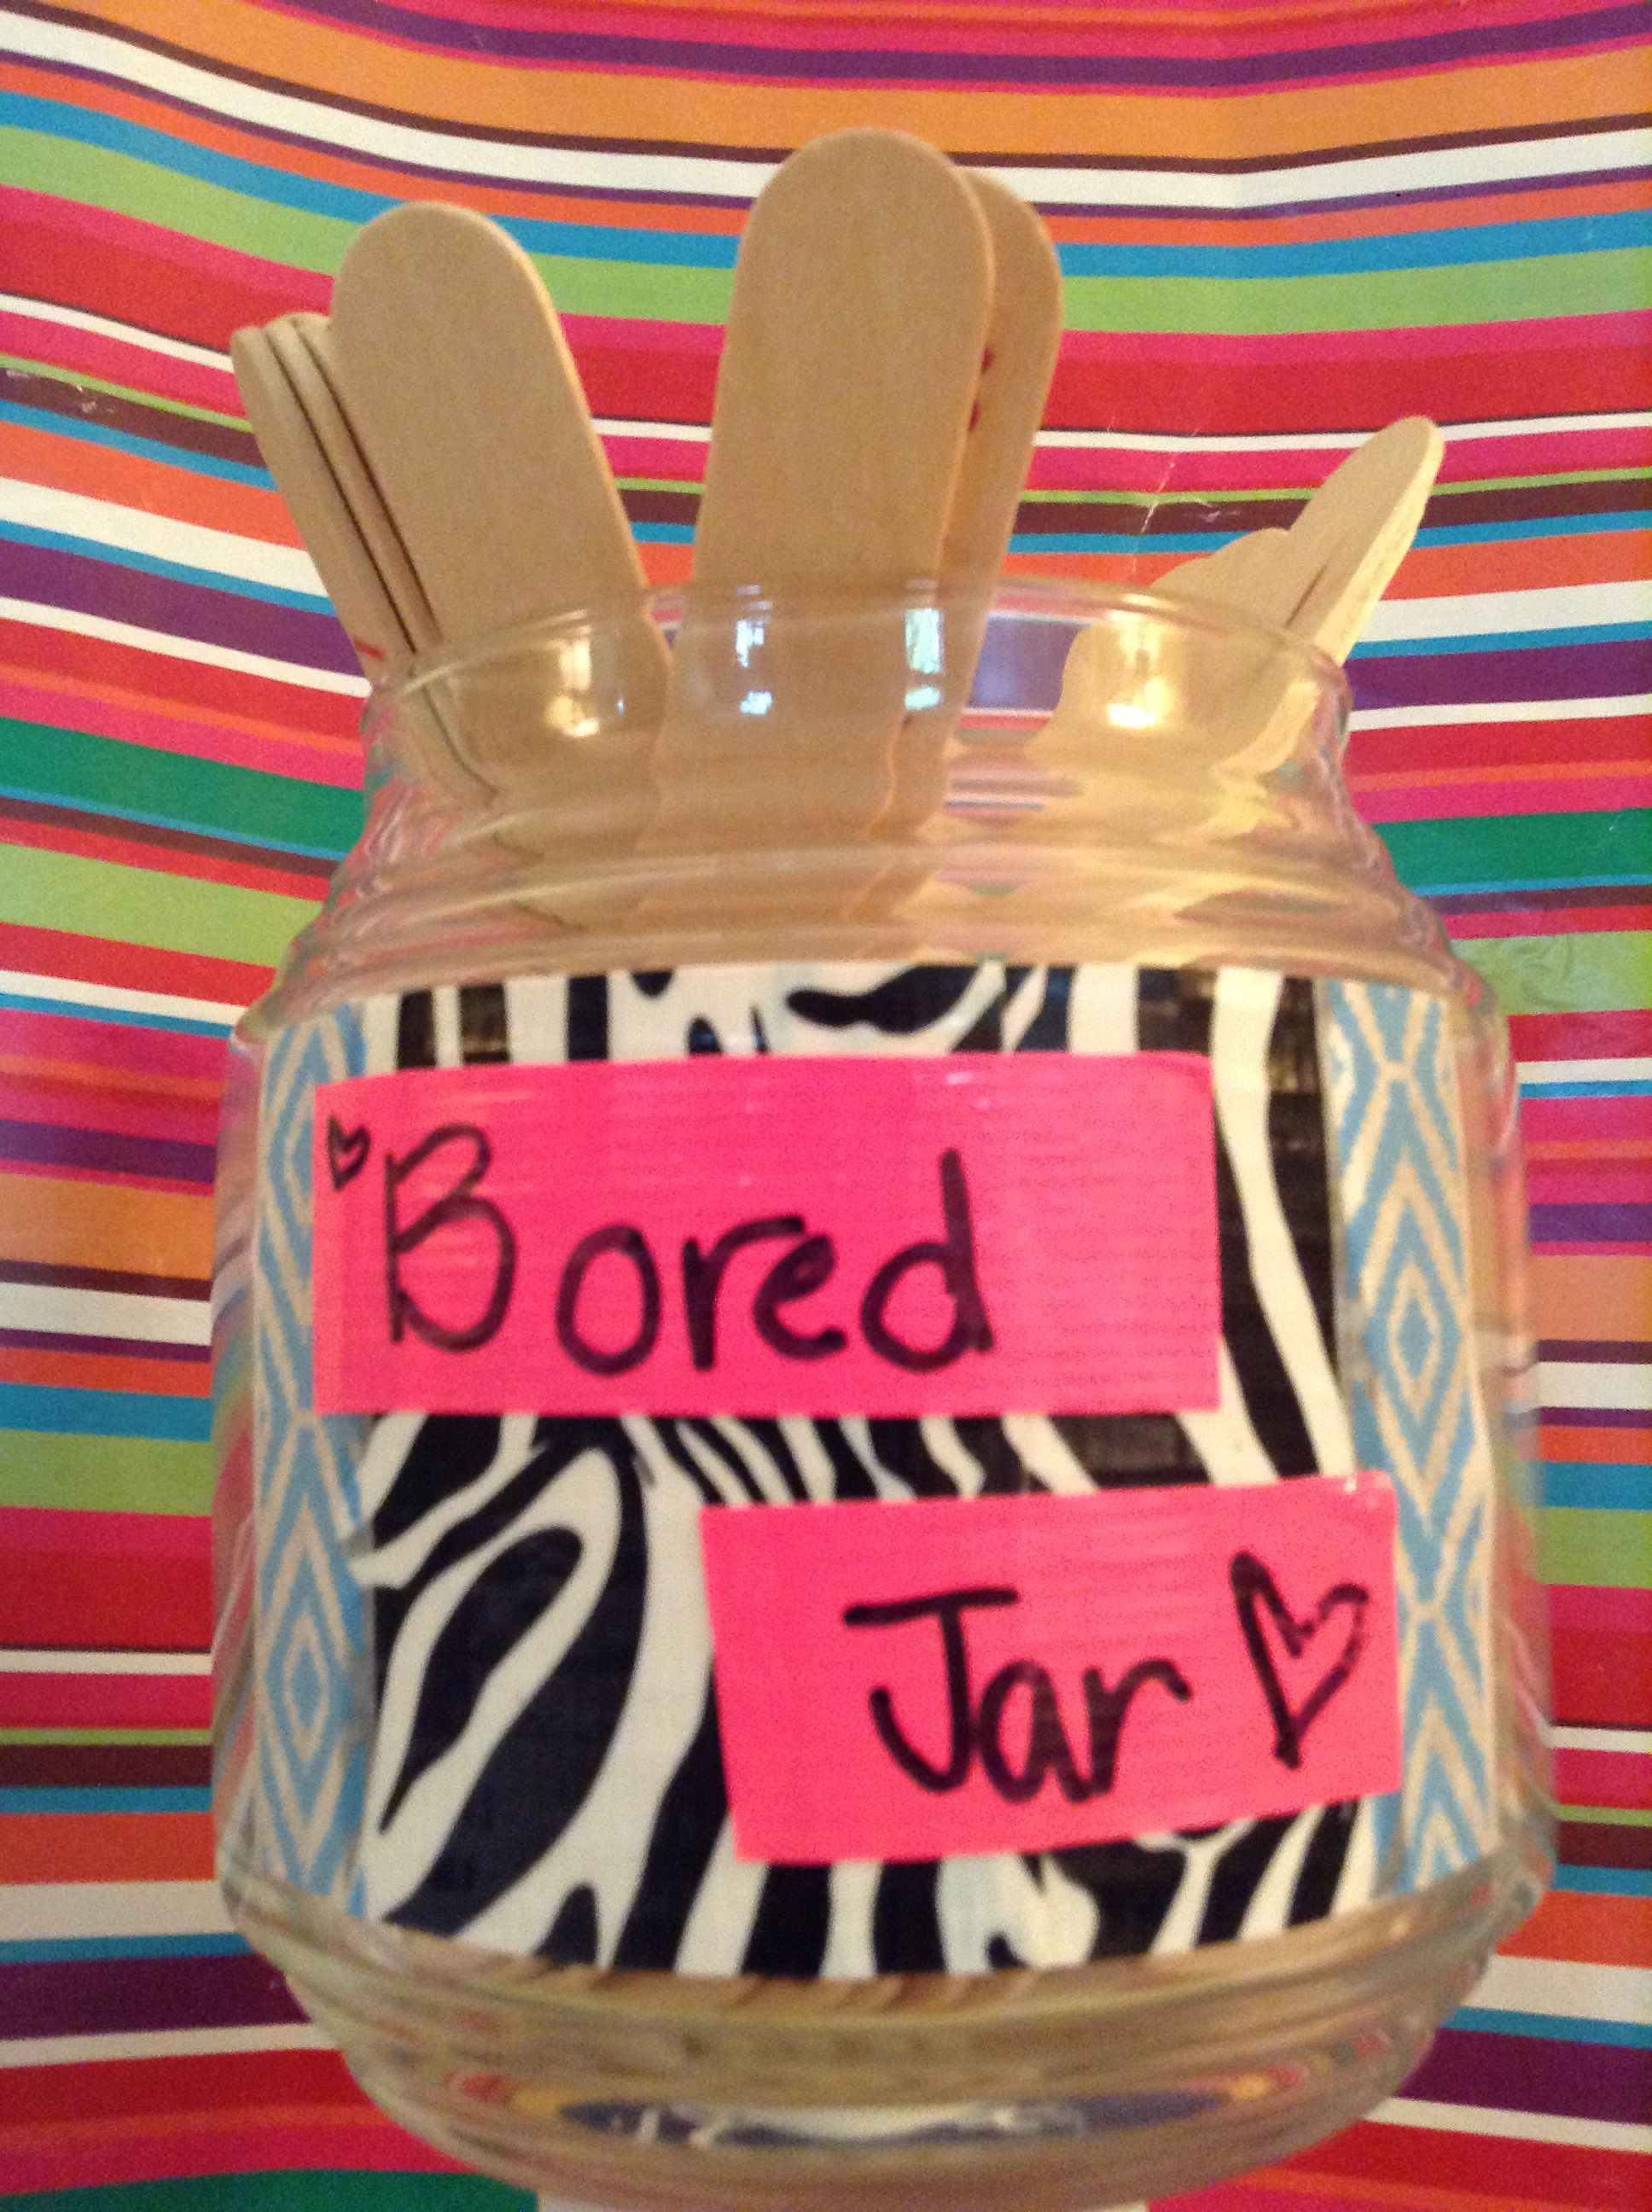 Every kid gets bored so why not make a bored jar. You